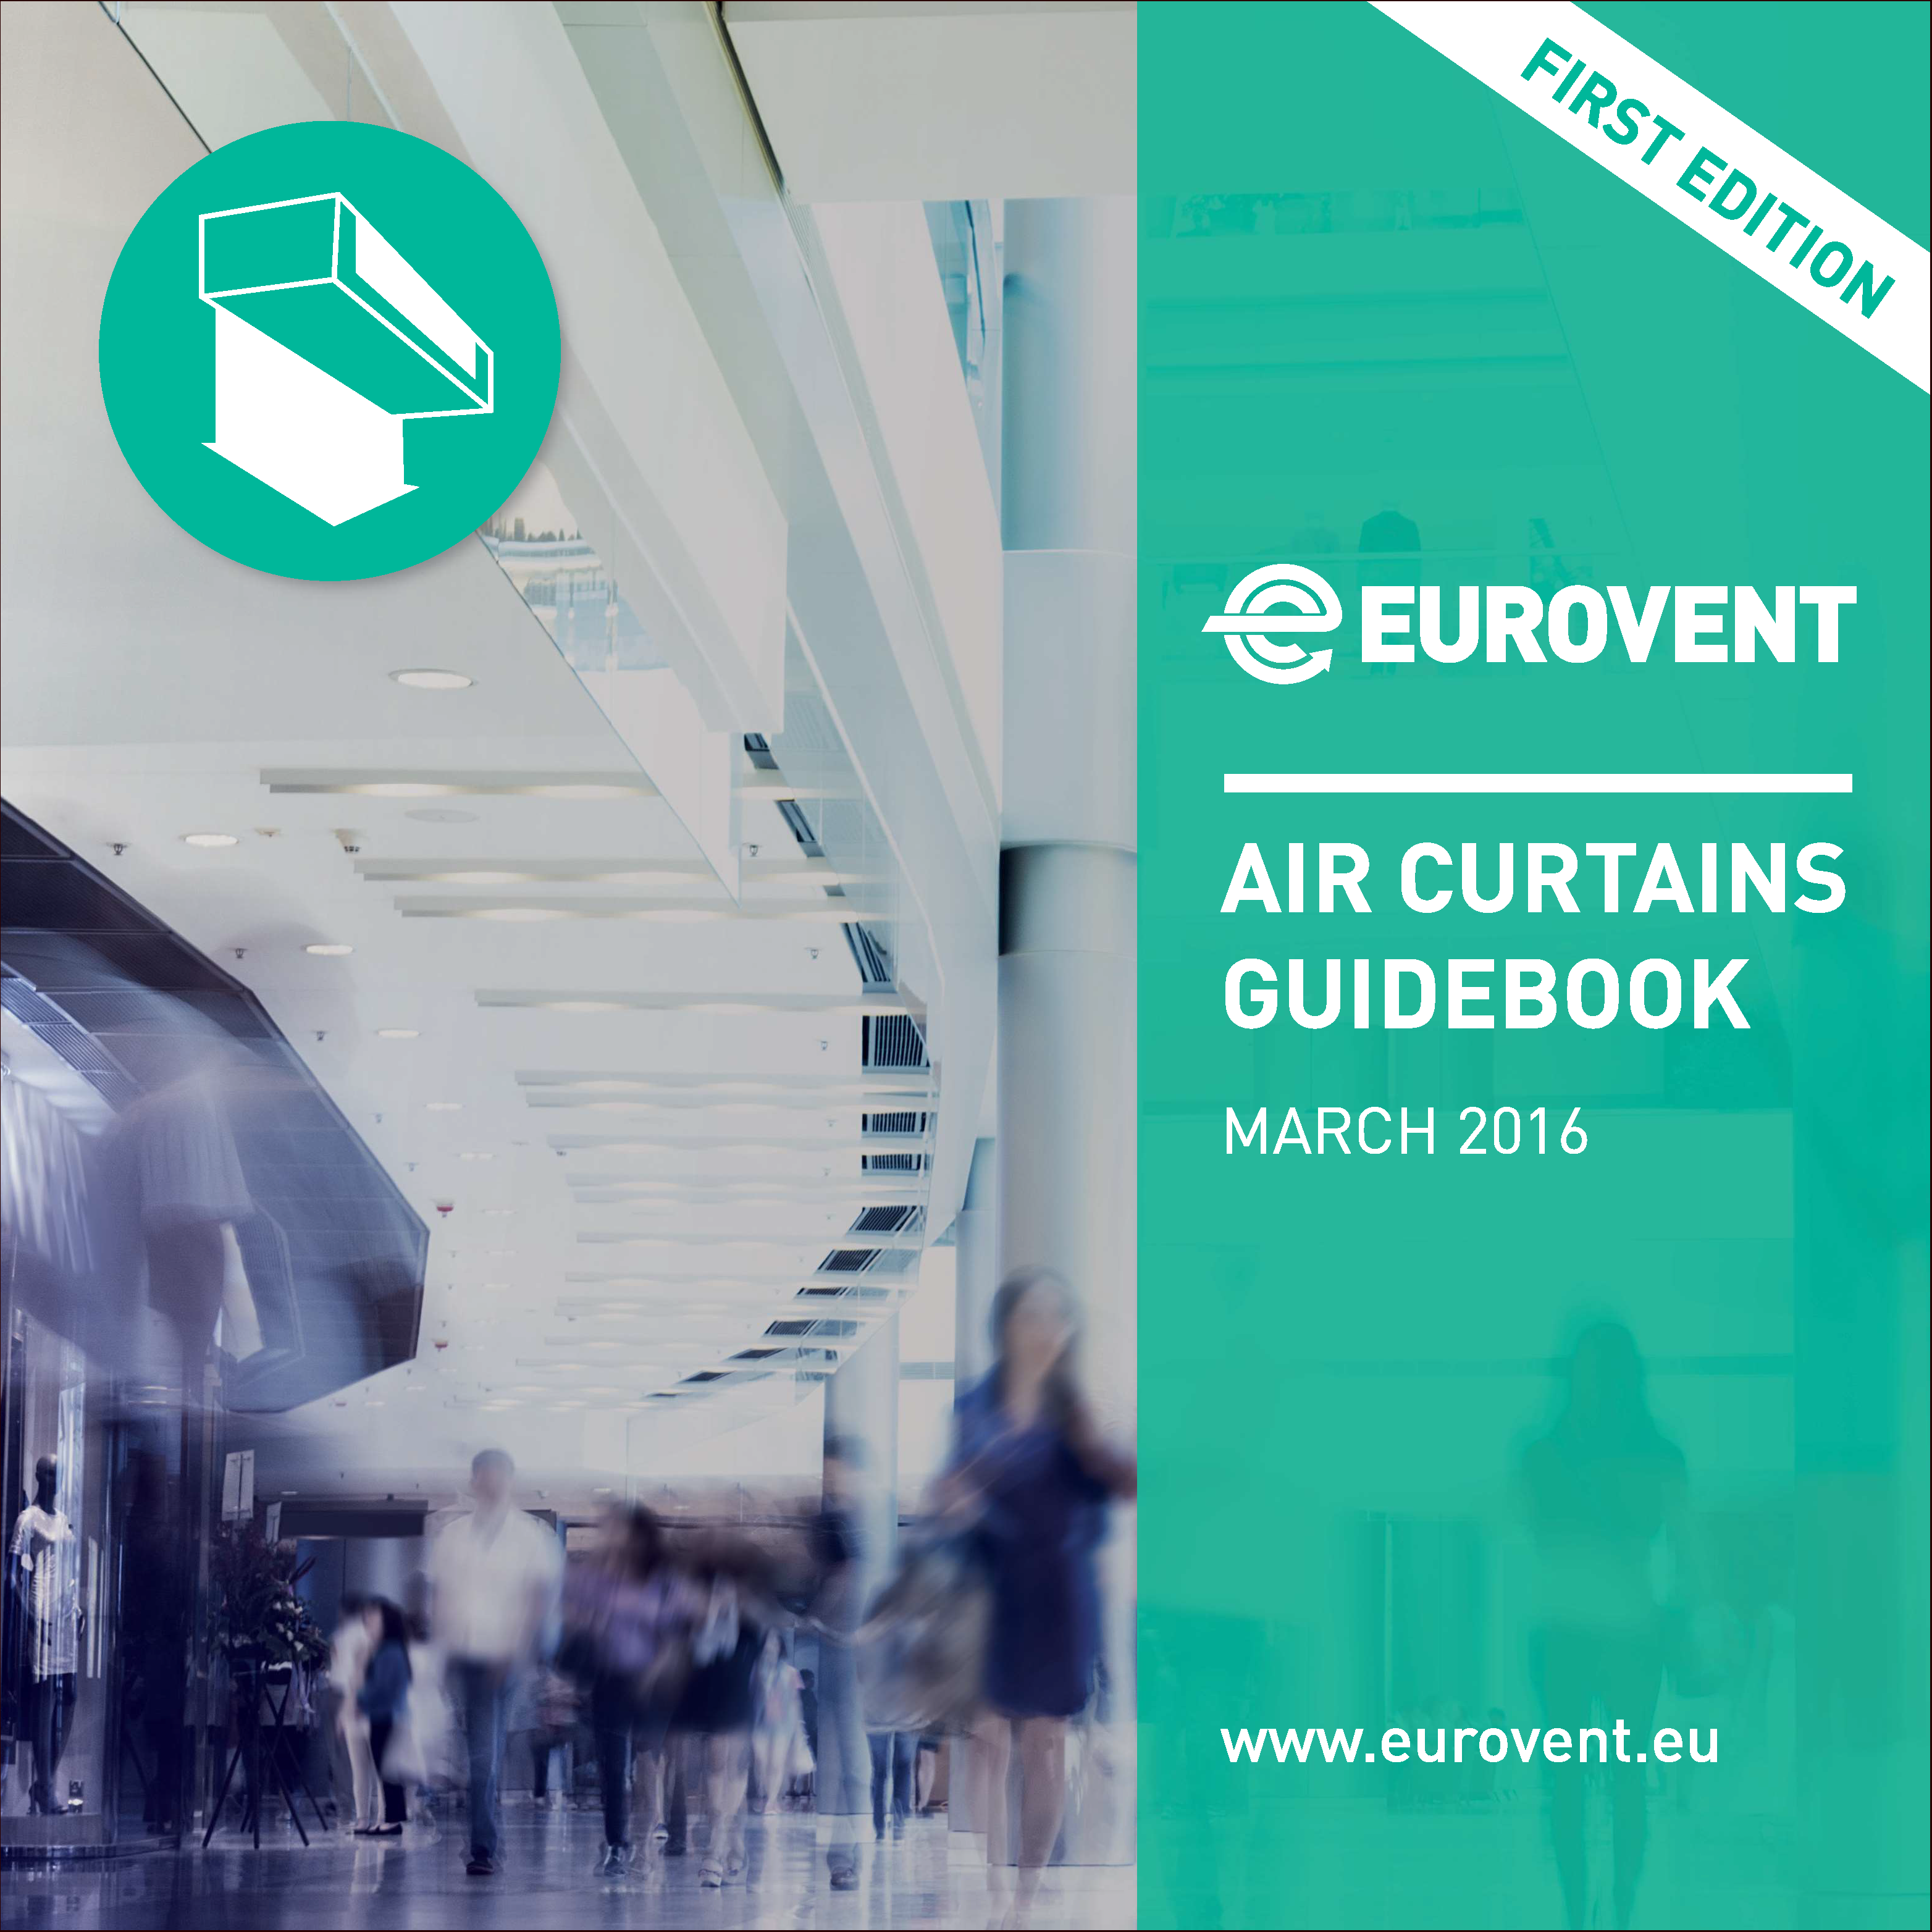 Eurovent Air Curtains Guidebook - First edition